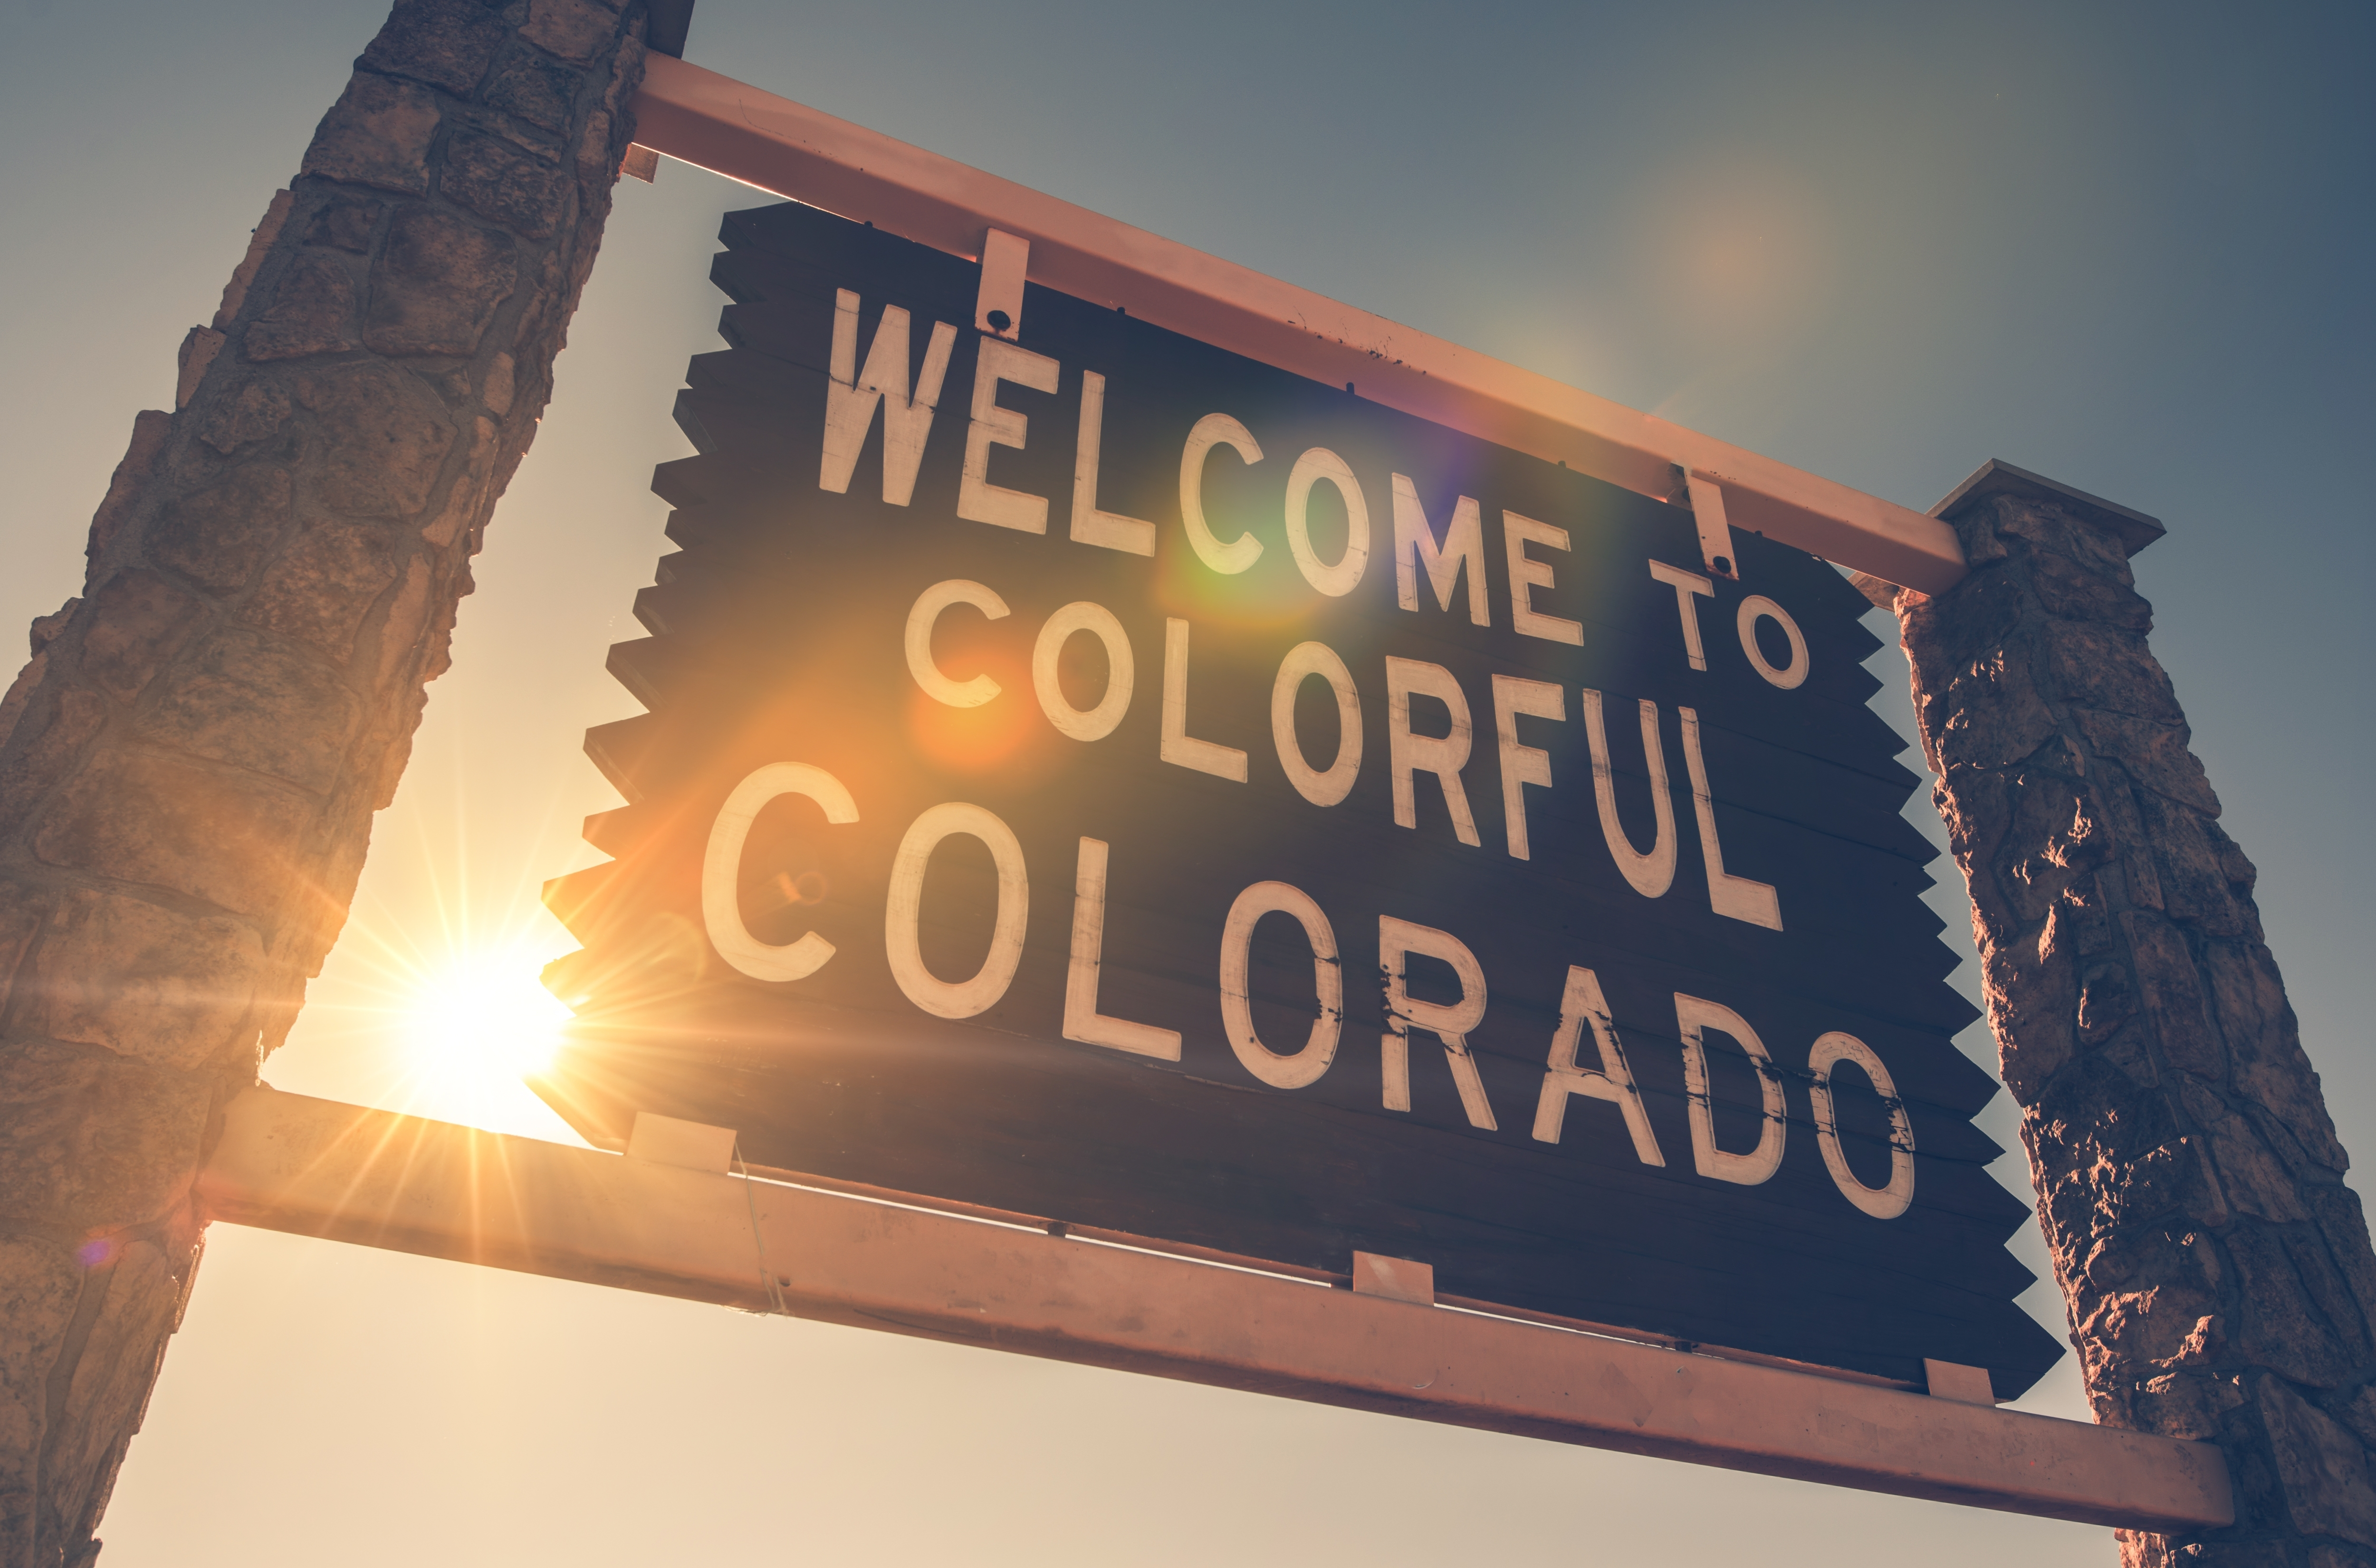 Welcome in Colorado State Entrance Woode